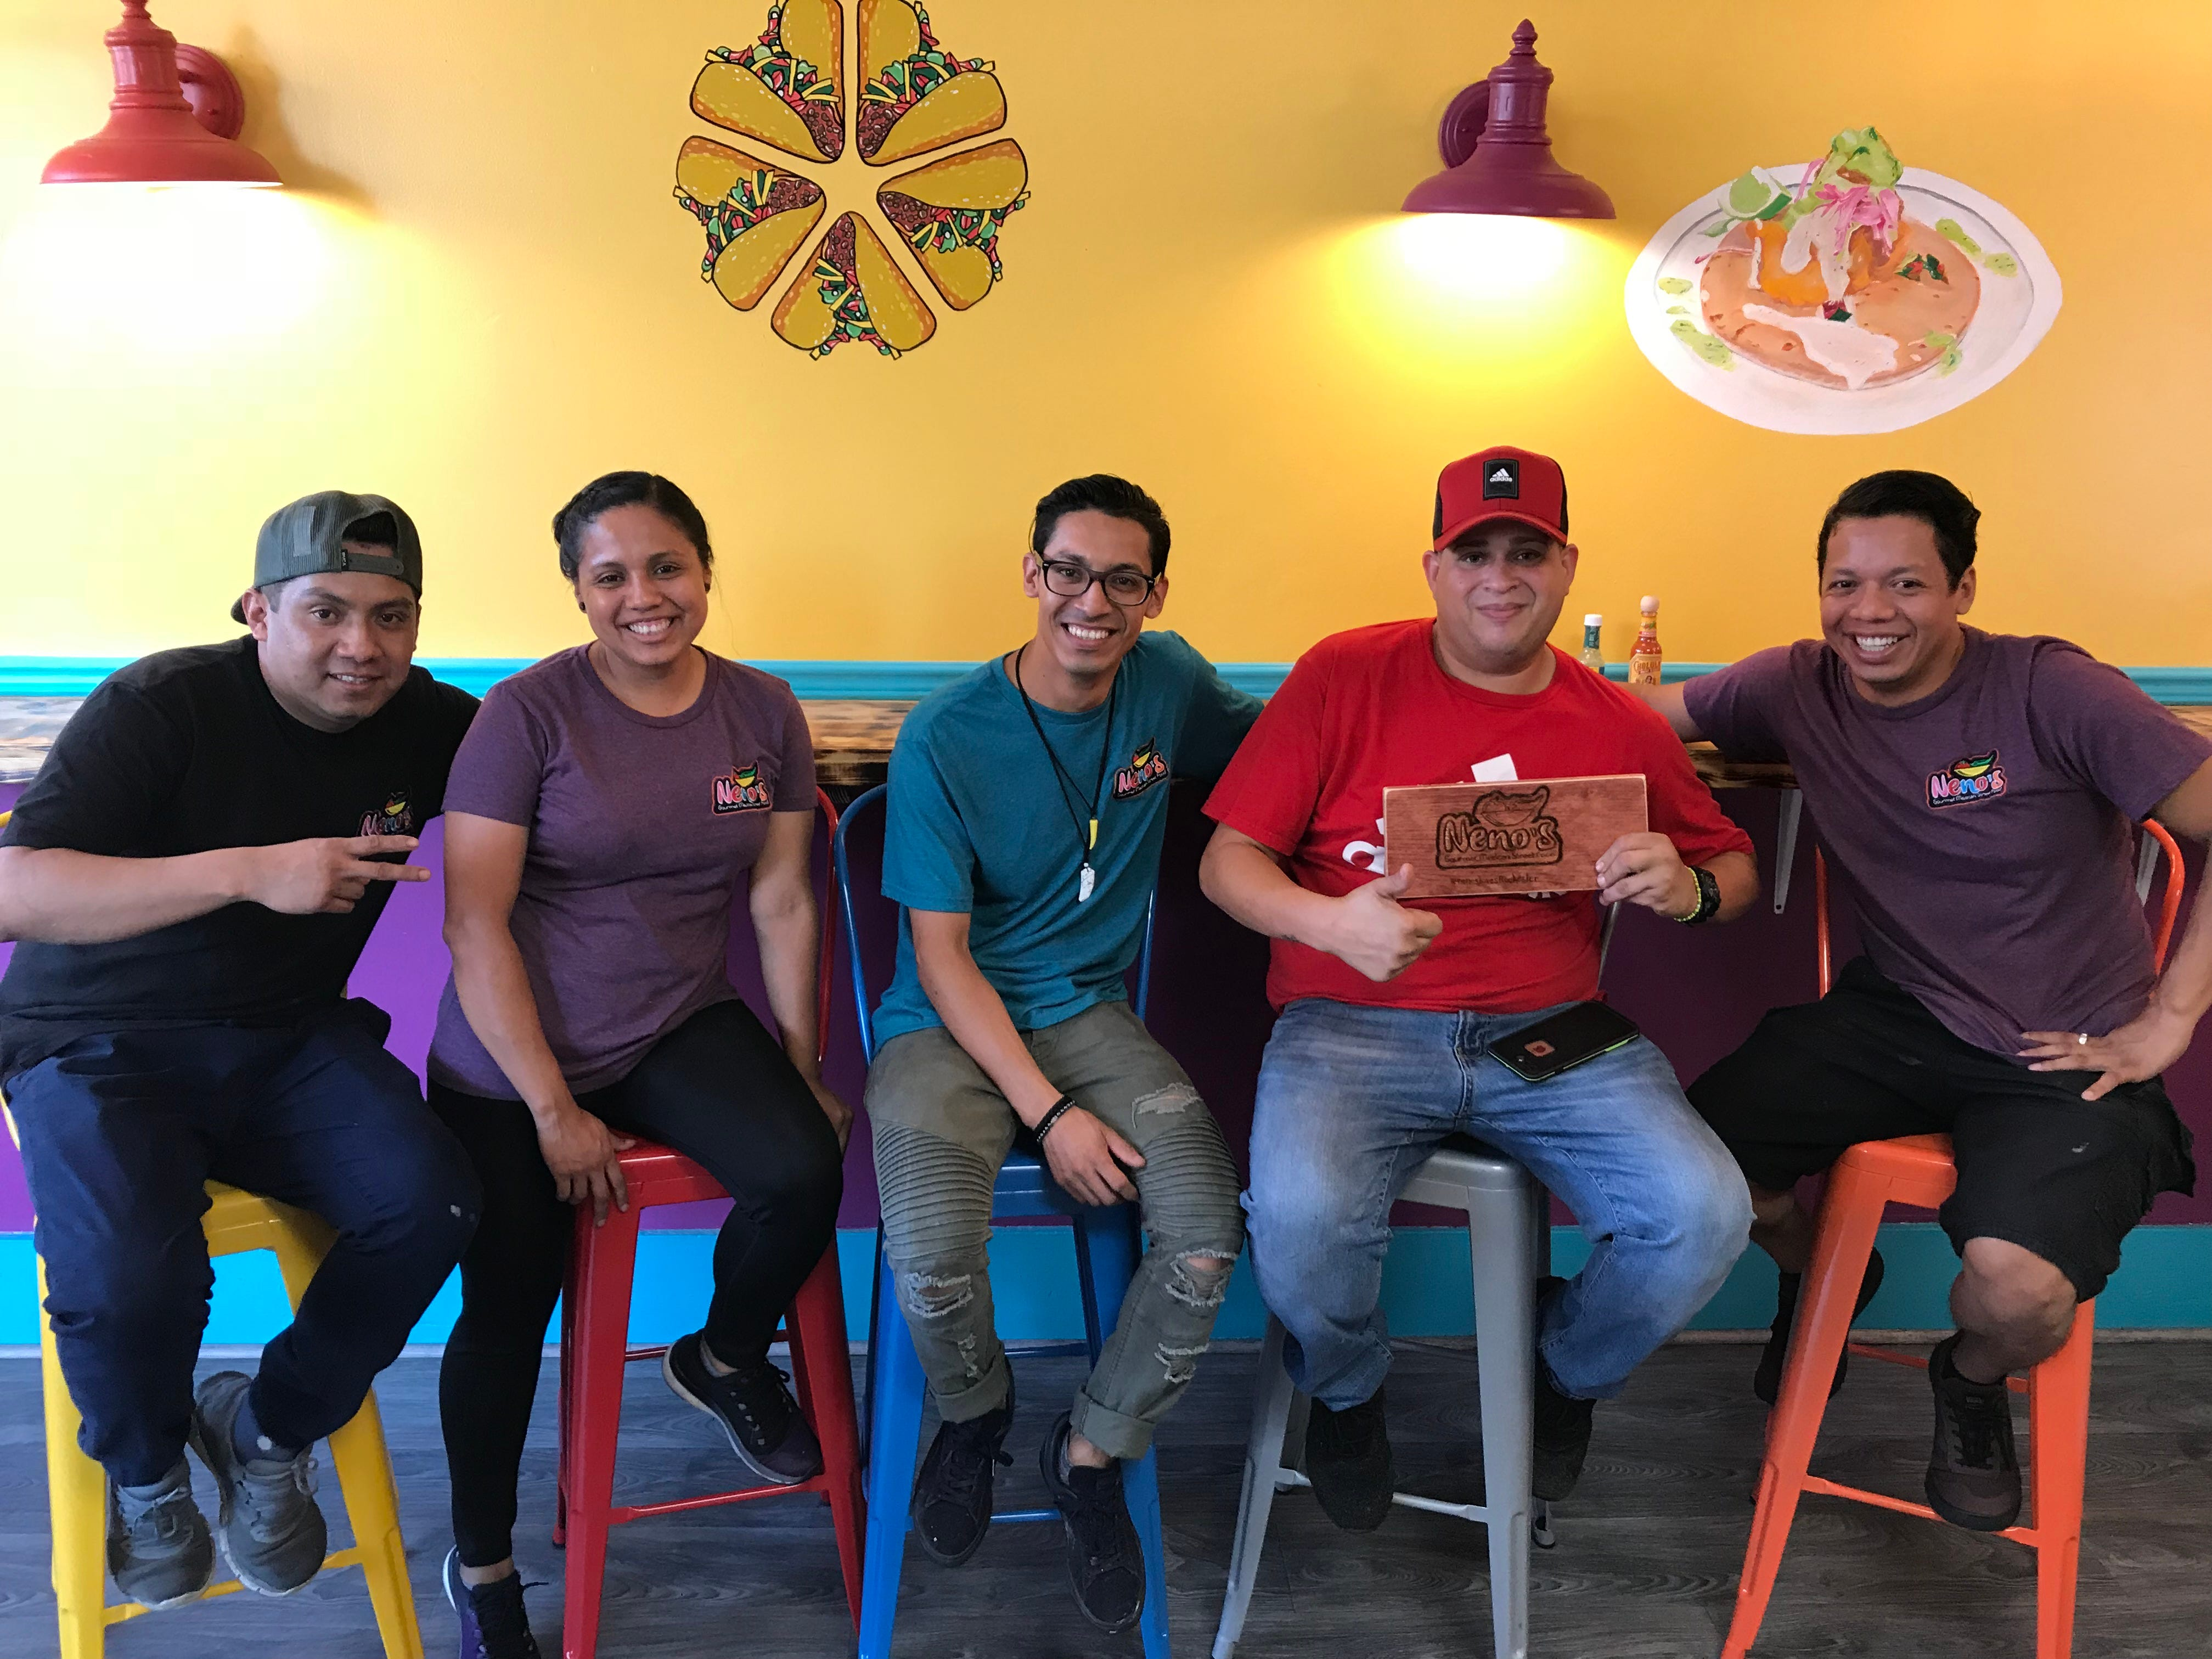 The Neno's crew includes siblings (from left, in Neno's T-shirts) Fidelio, Ojayra, Derlisrael and Eden Rita. Jorge Enrique Velázquez, in red, is sous chef.